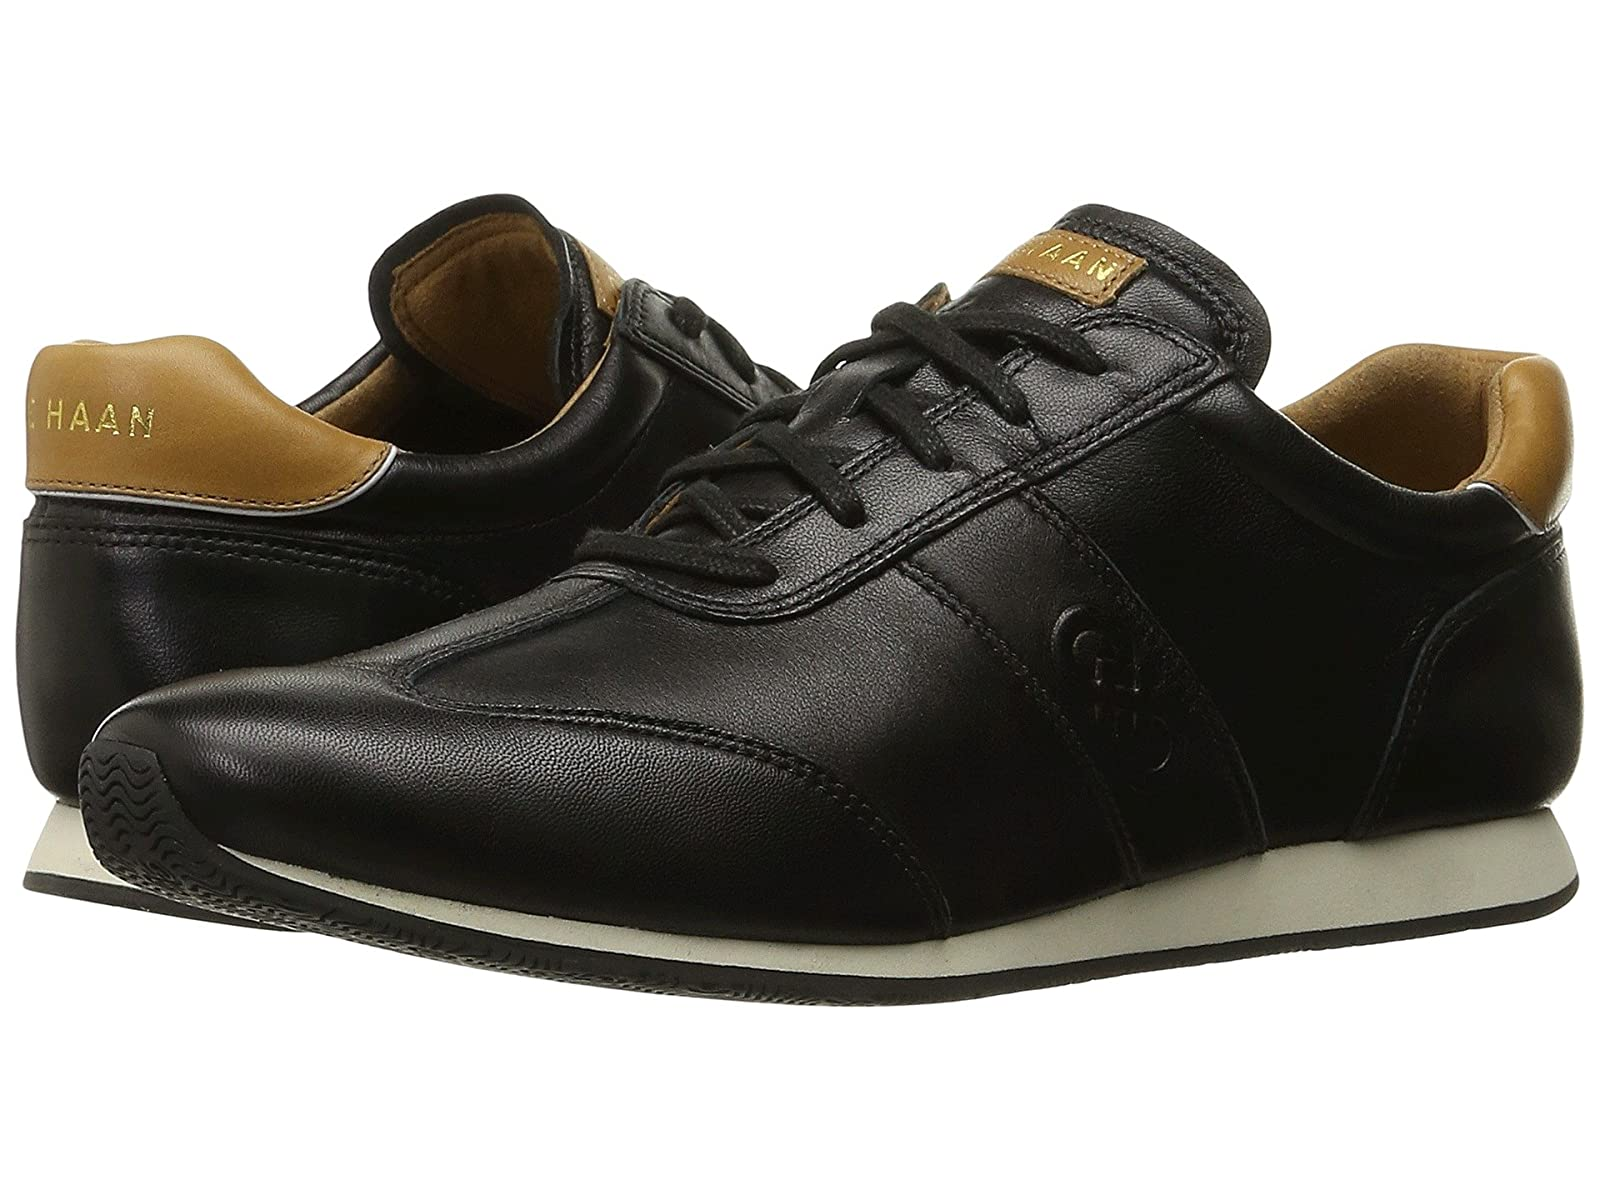 Cole Haan Trafton Vintage TrainerCheap and distinctive eye-catching shoes